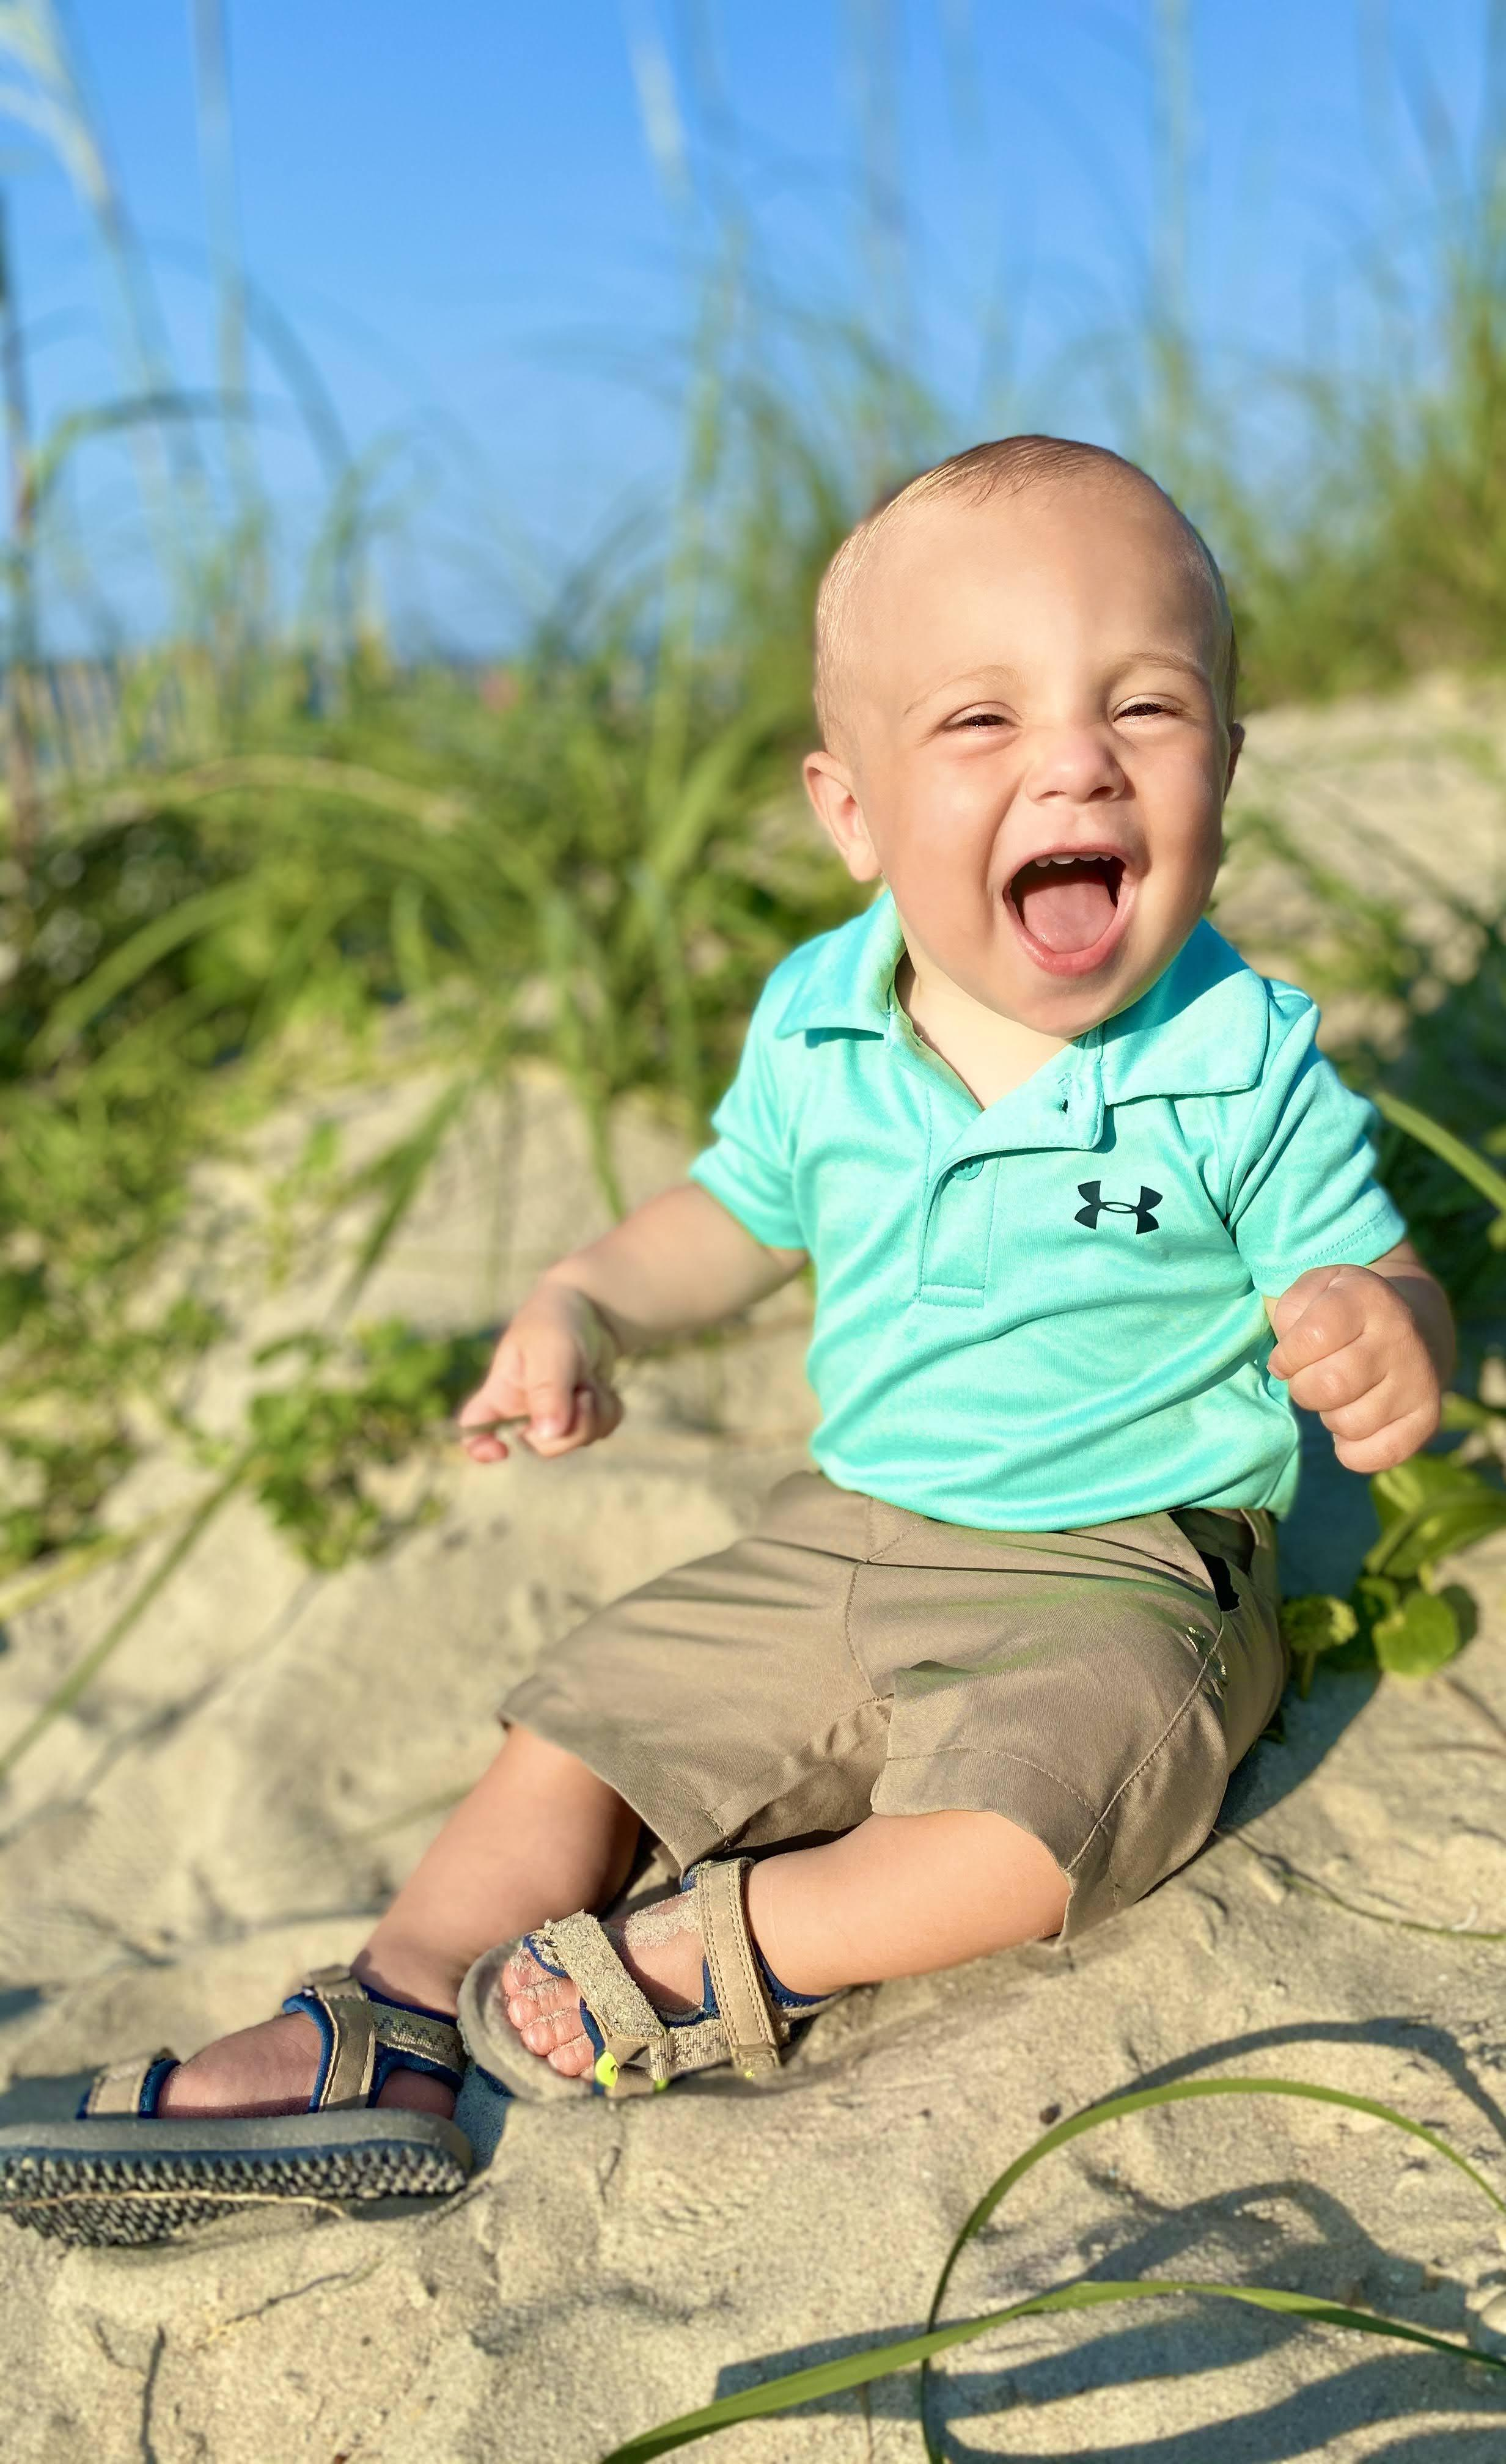 Jackson loved playing in the sand at Holden Beach!